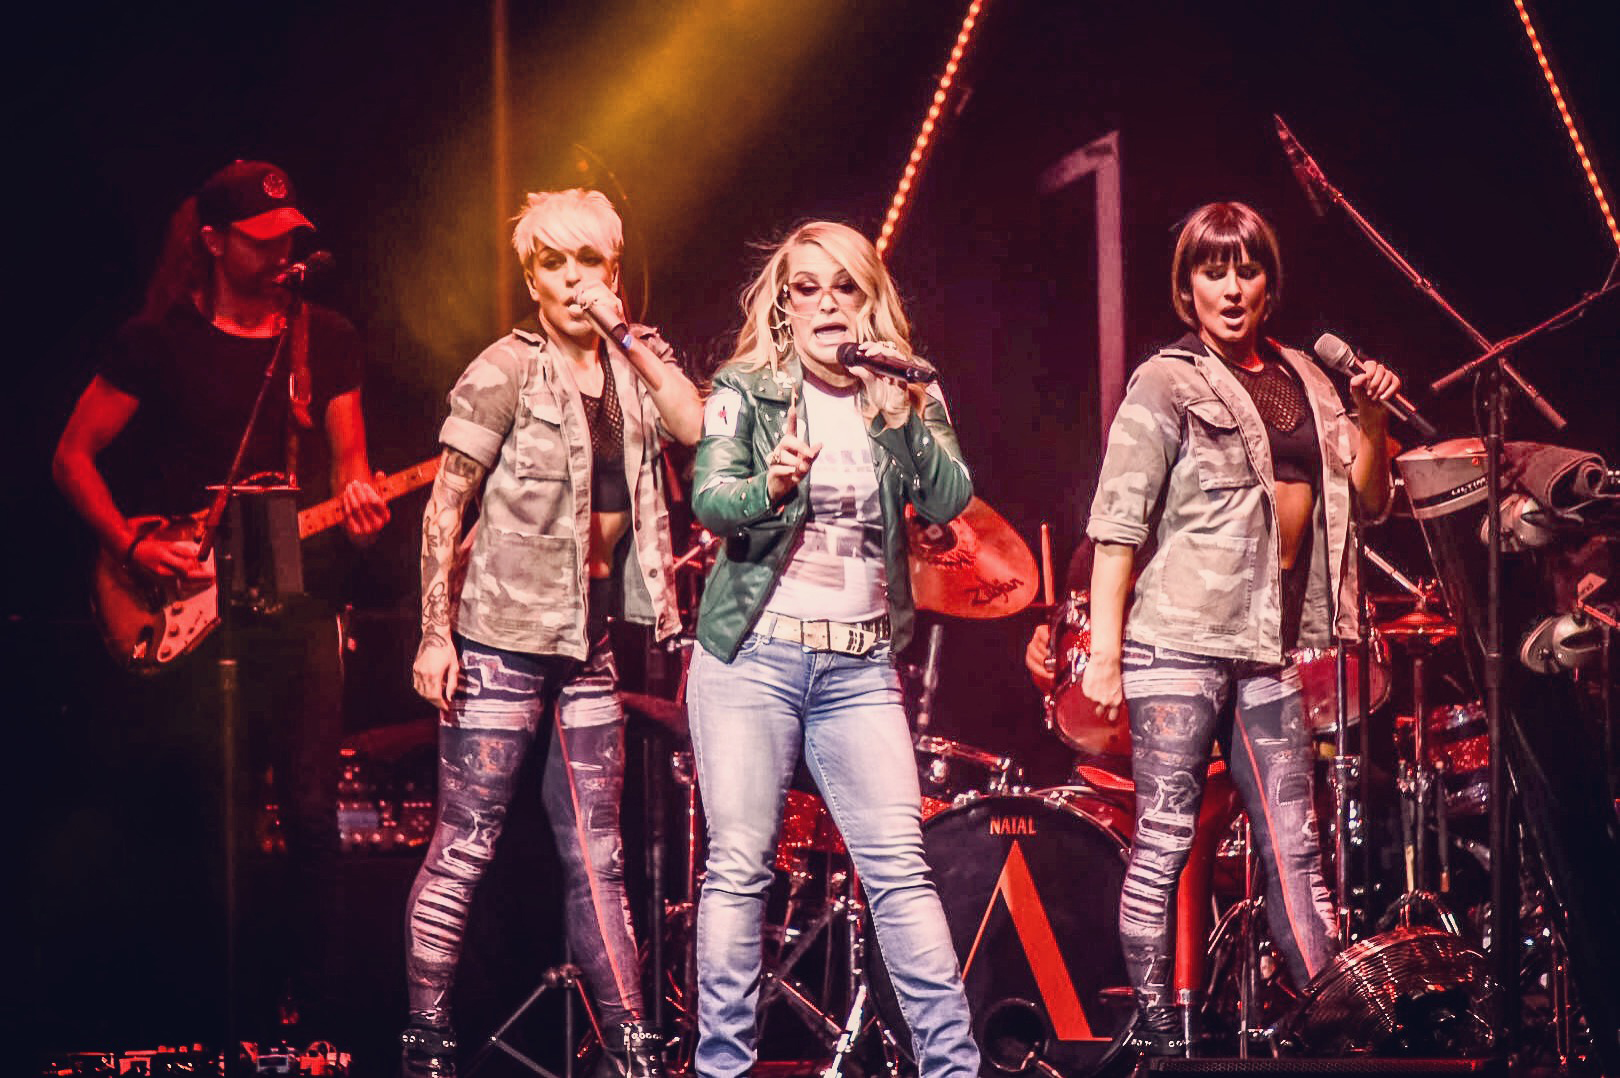 02 - Anastacia performing at Edinburgh's Usher Hall as part of Ultimate Collection Tour 2017 - 31-05-2017 - Picture By - Calum Buchan Photography.jpg